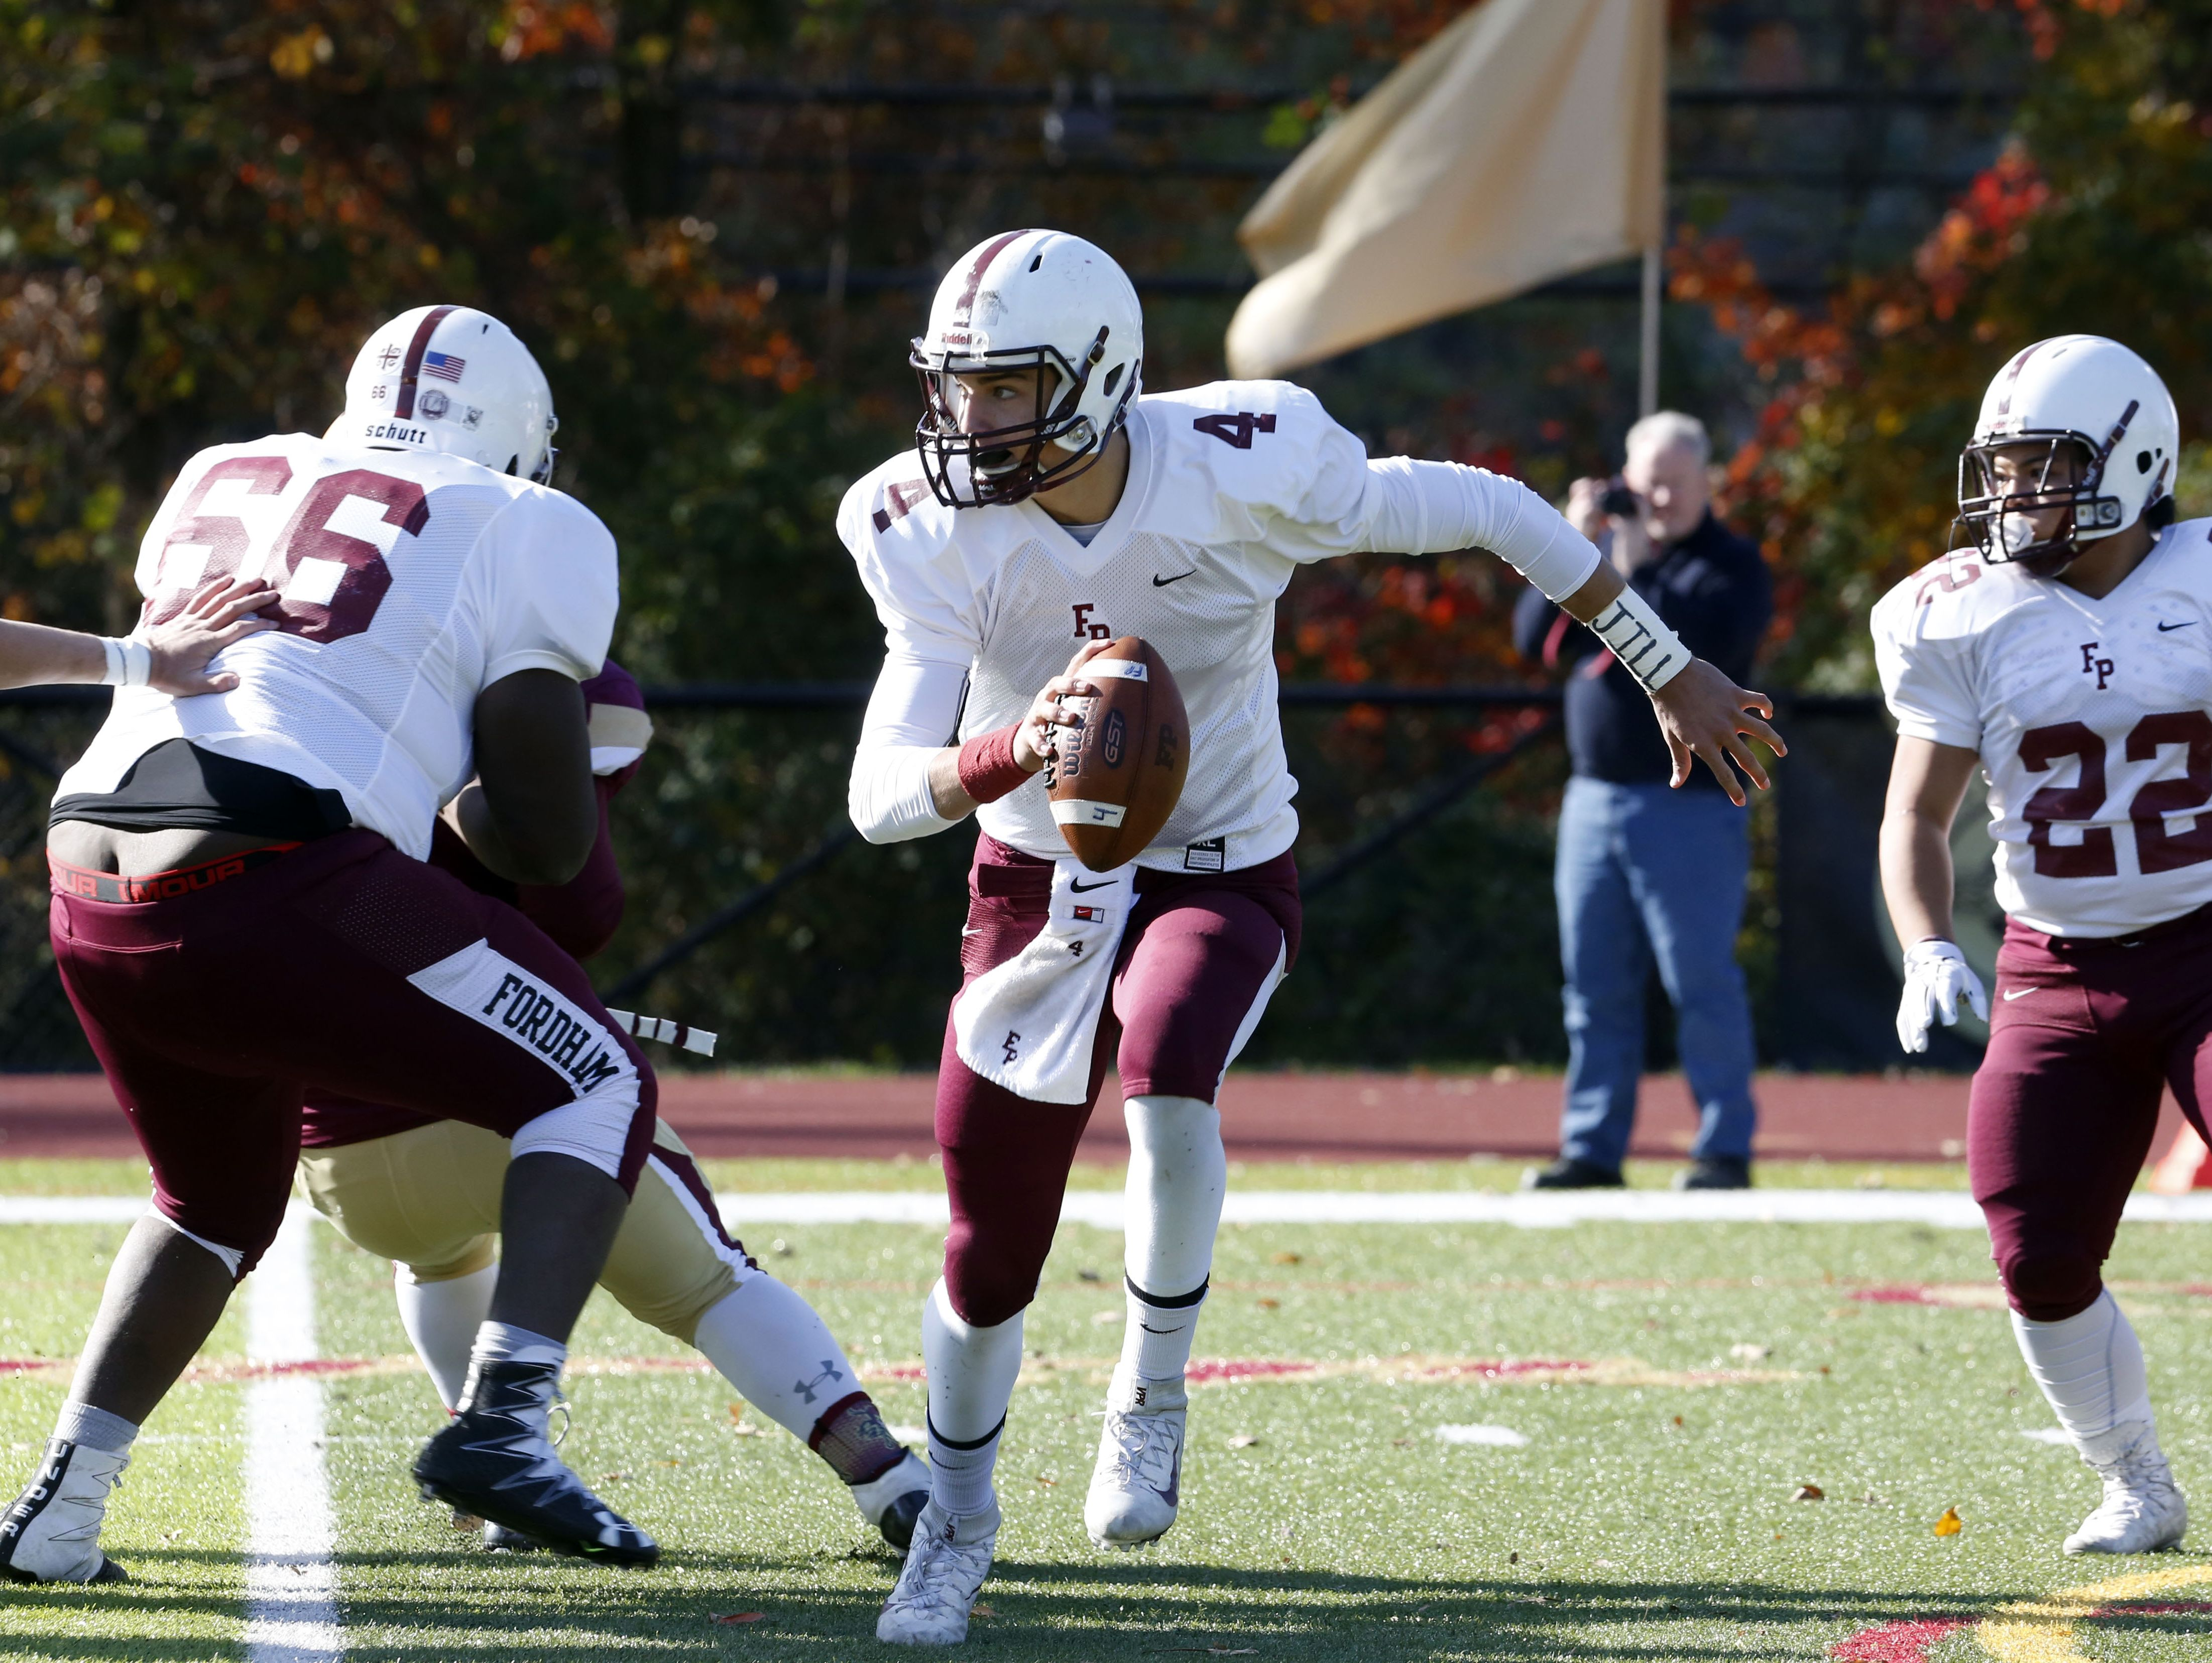 Fordham Prep quarterback Matt Valecce in action against Iona Prep in the quarterfinals of the Catholic High School Football League Nov. 6, 2016 at Iona Prep in New Rochelle. Iona Prep won, 41-0.